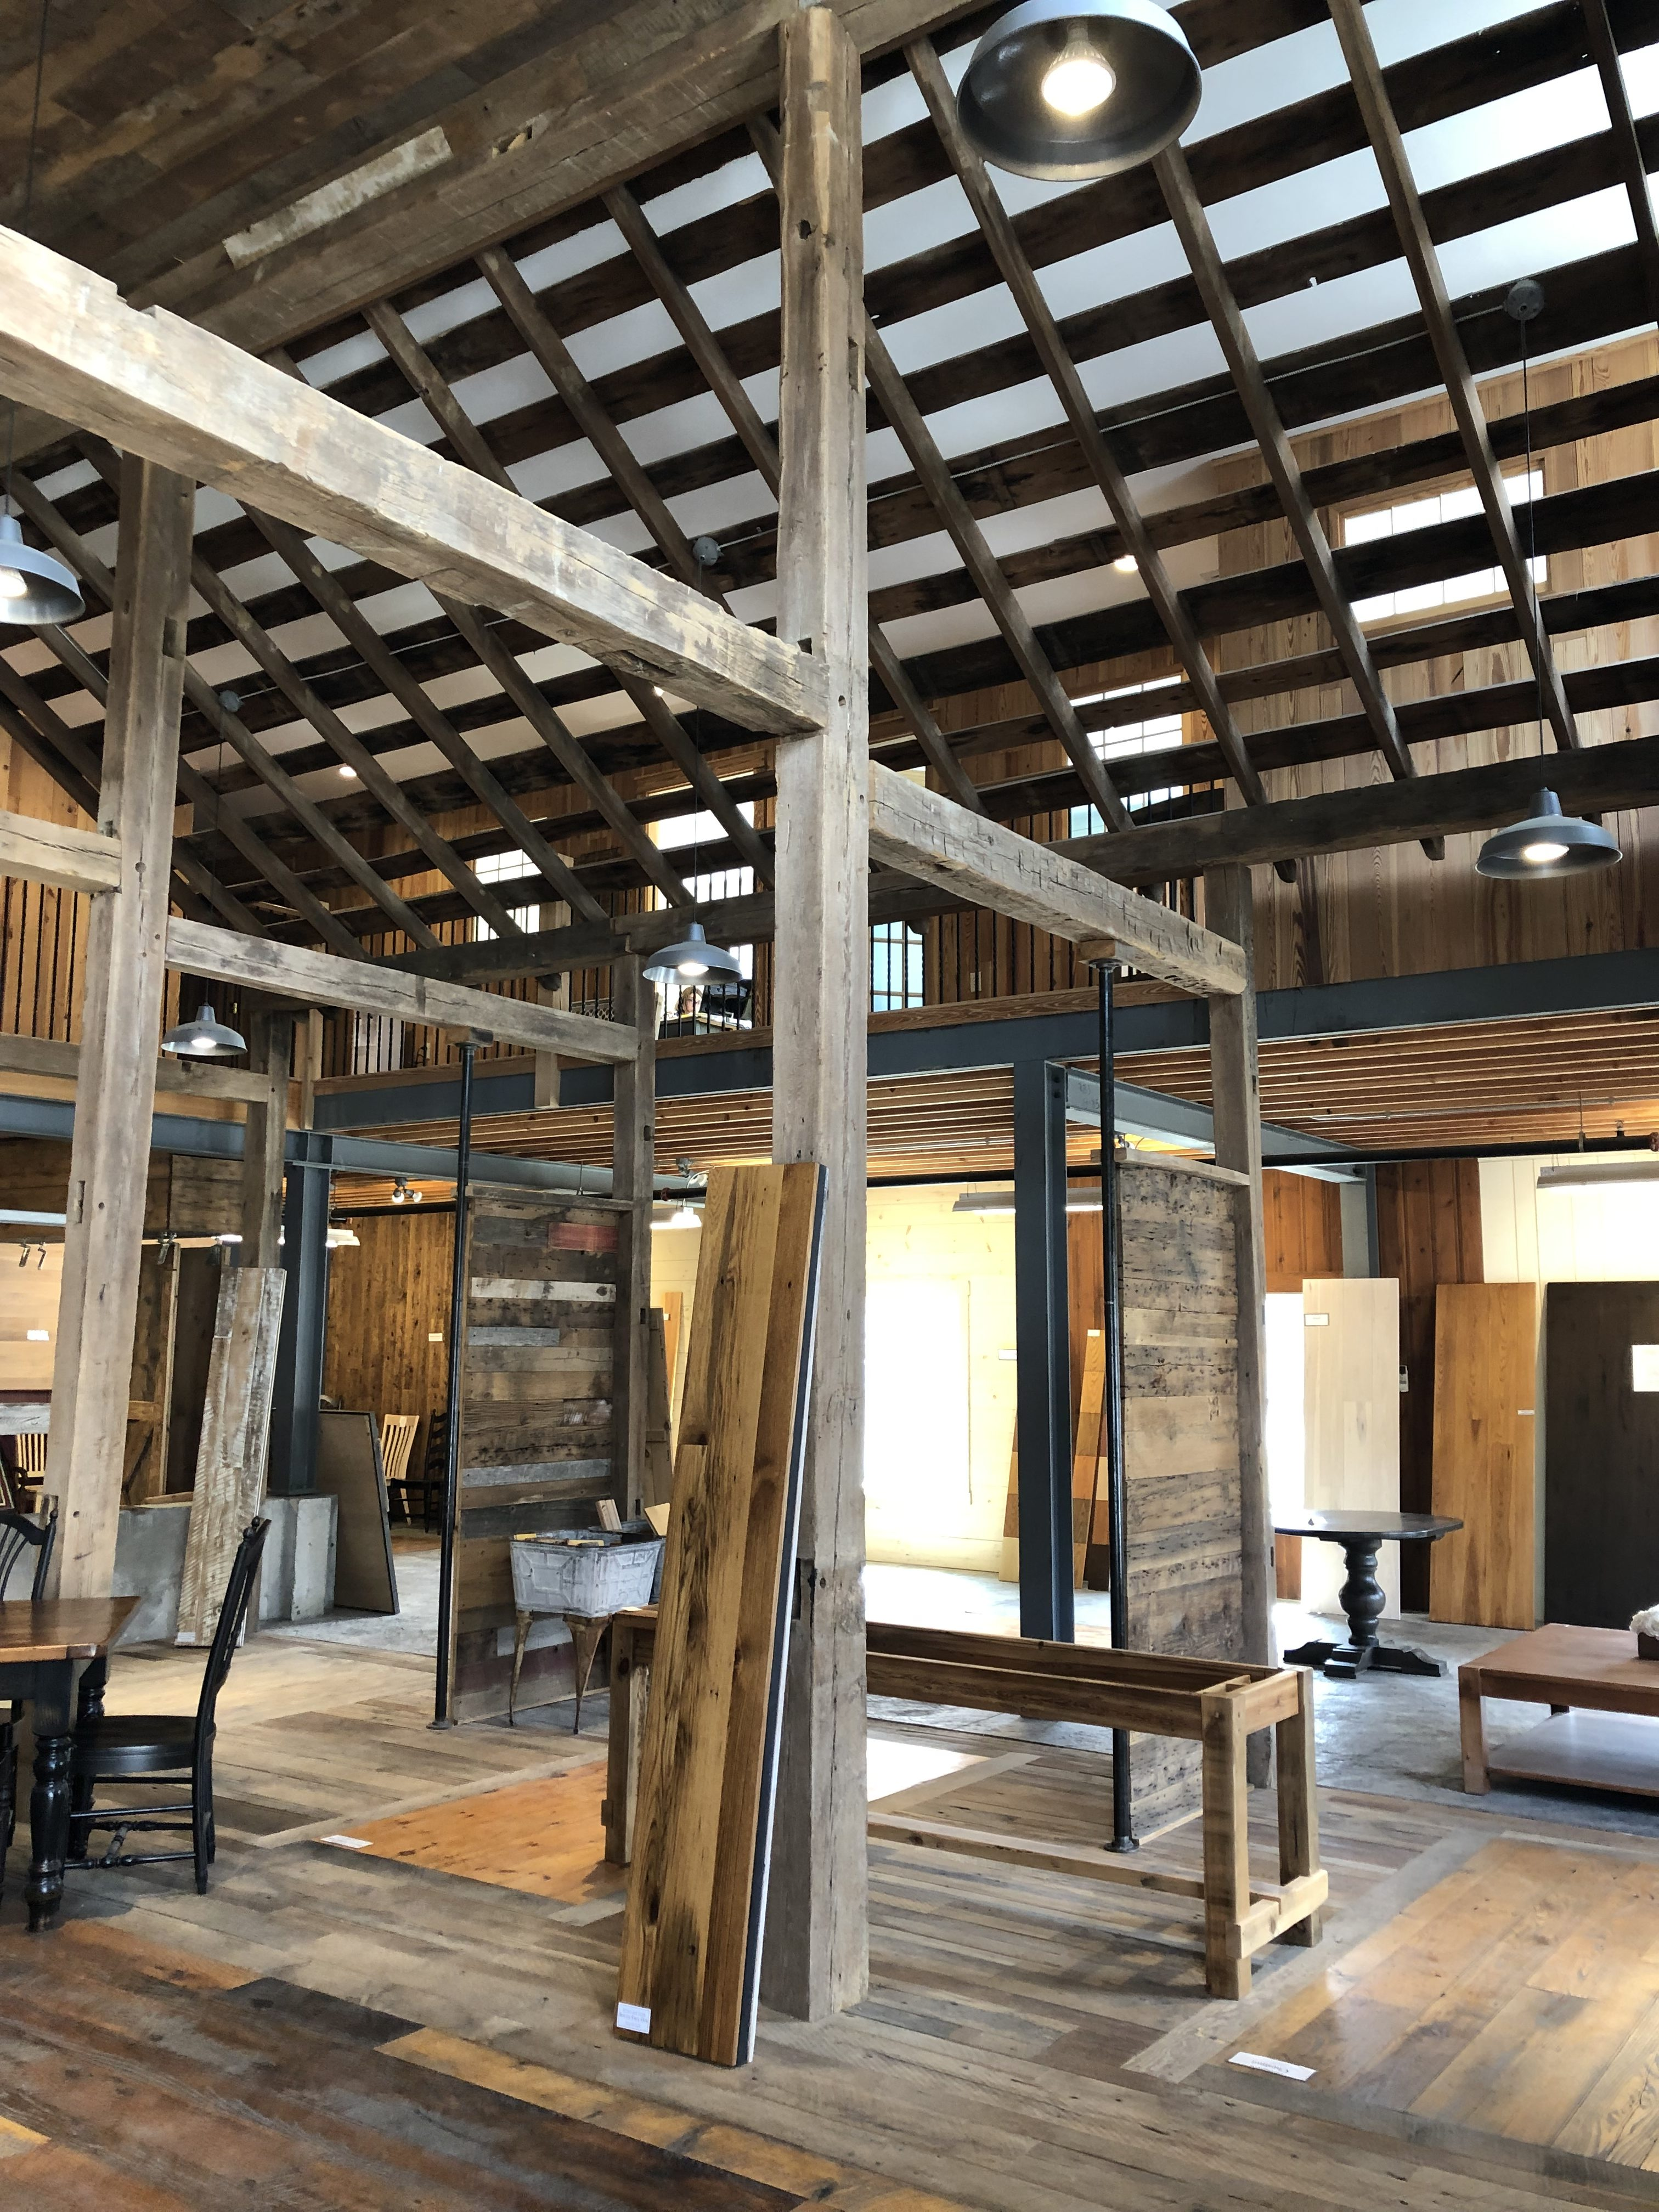 Antique barn beams